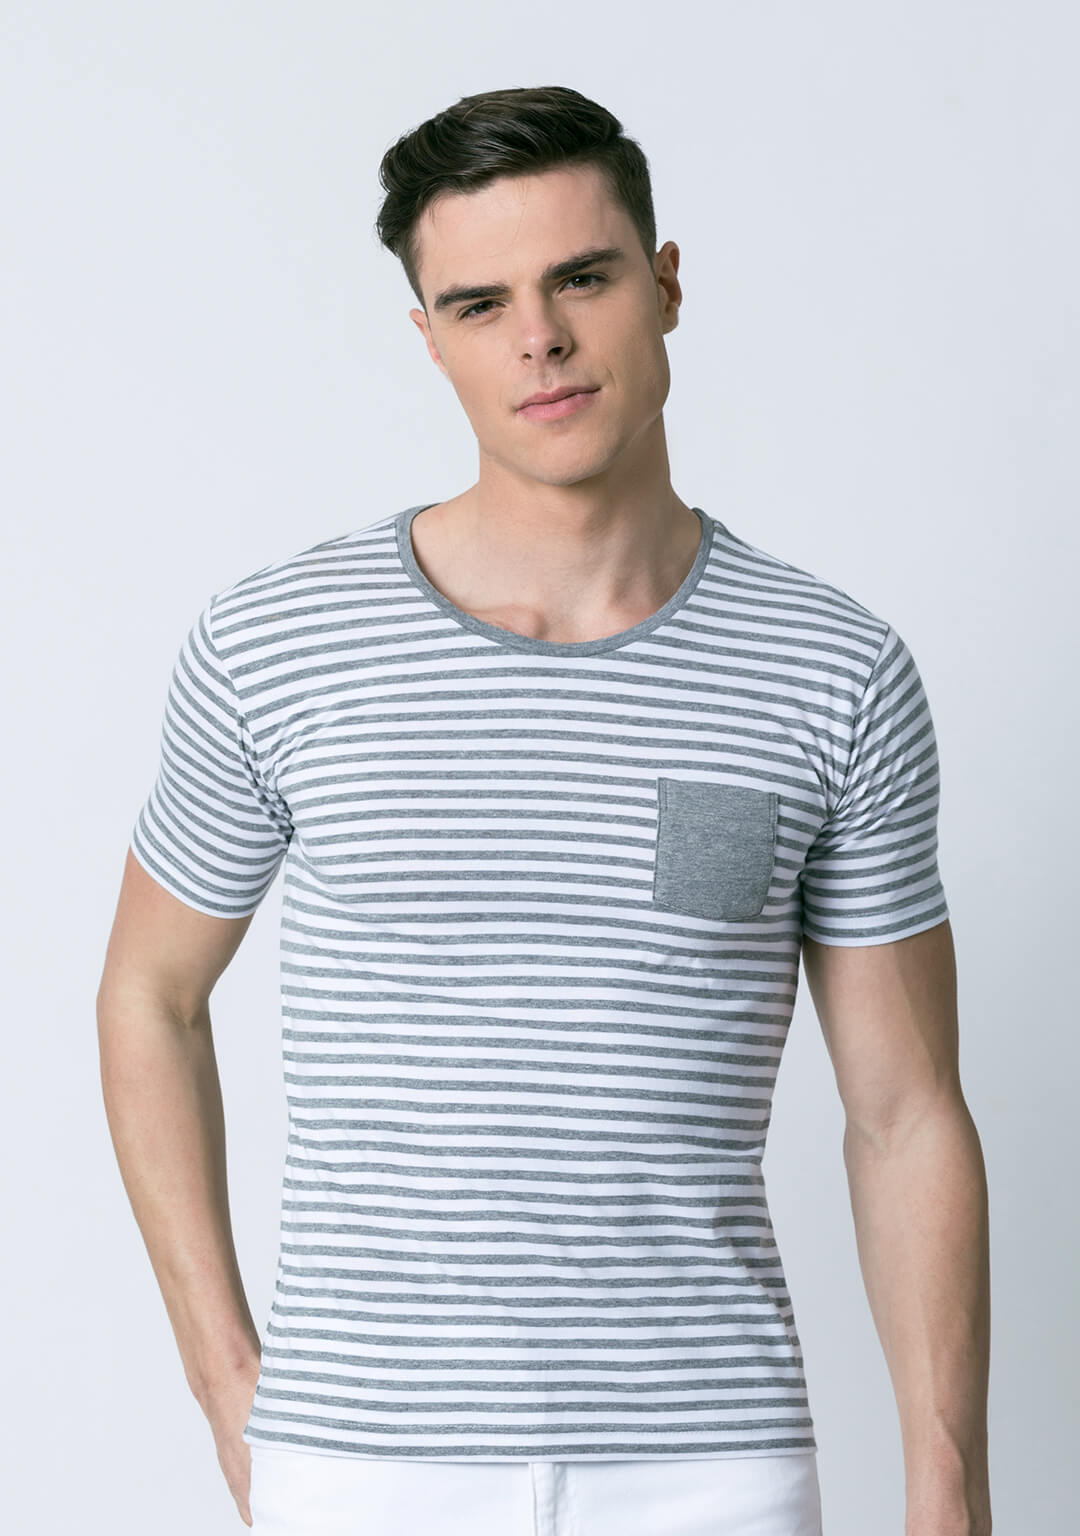 Stripe tee in Grey And White